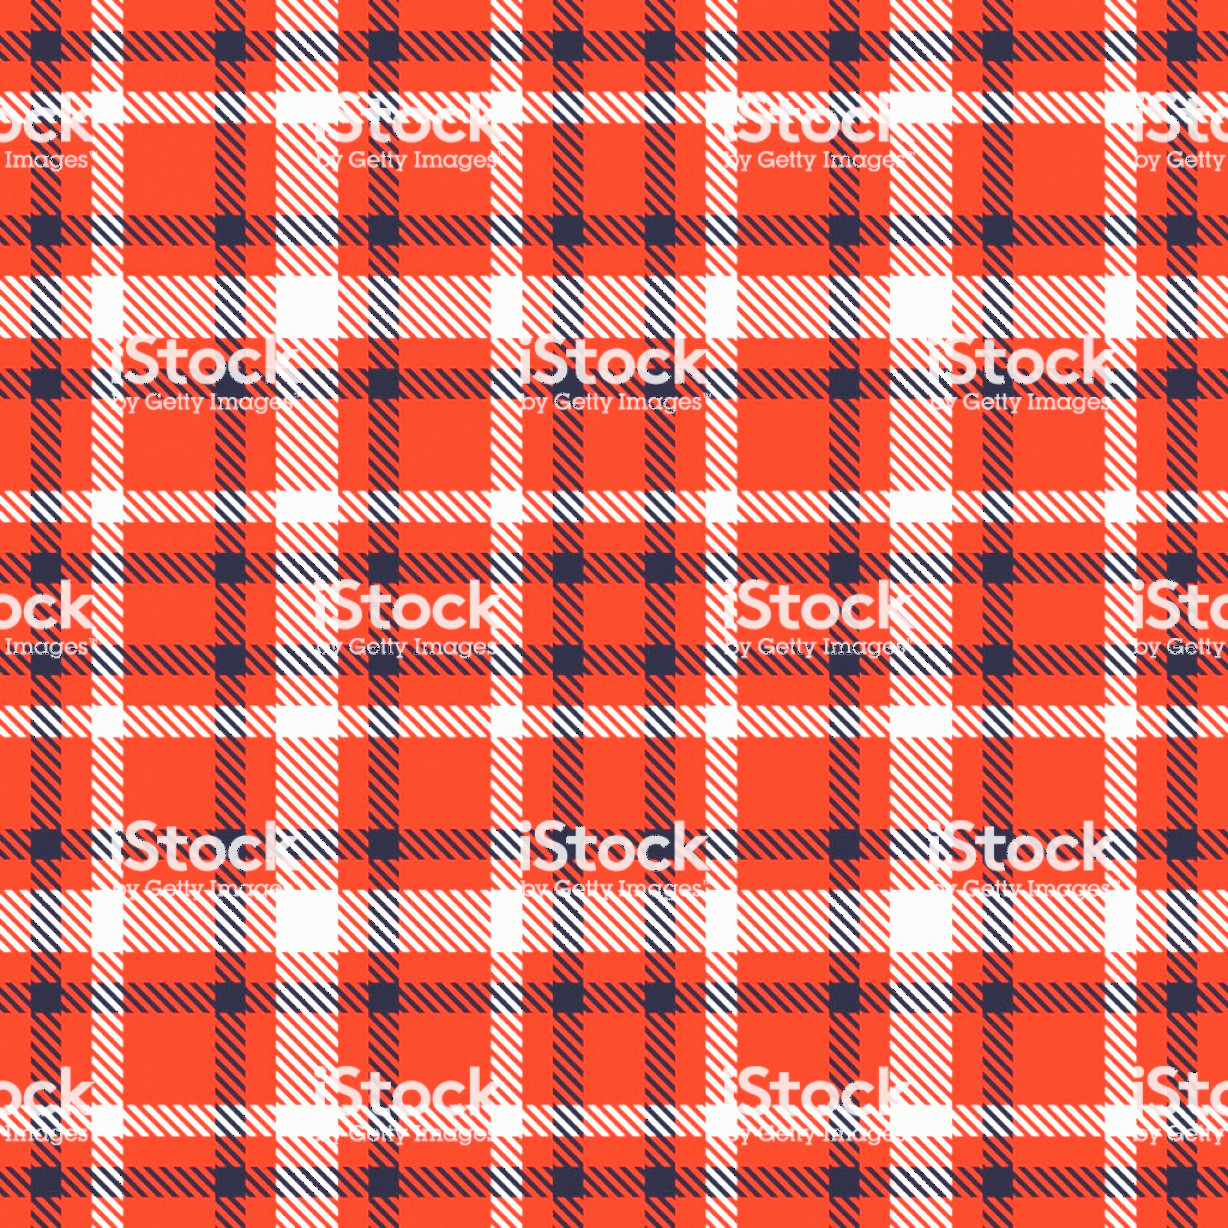 Plaid Vector: Red Black And White Tartan Seamless Vector Pattern Checkered Plaid Texture Gm